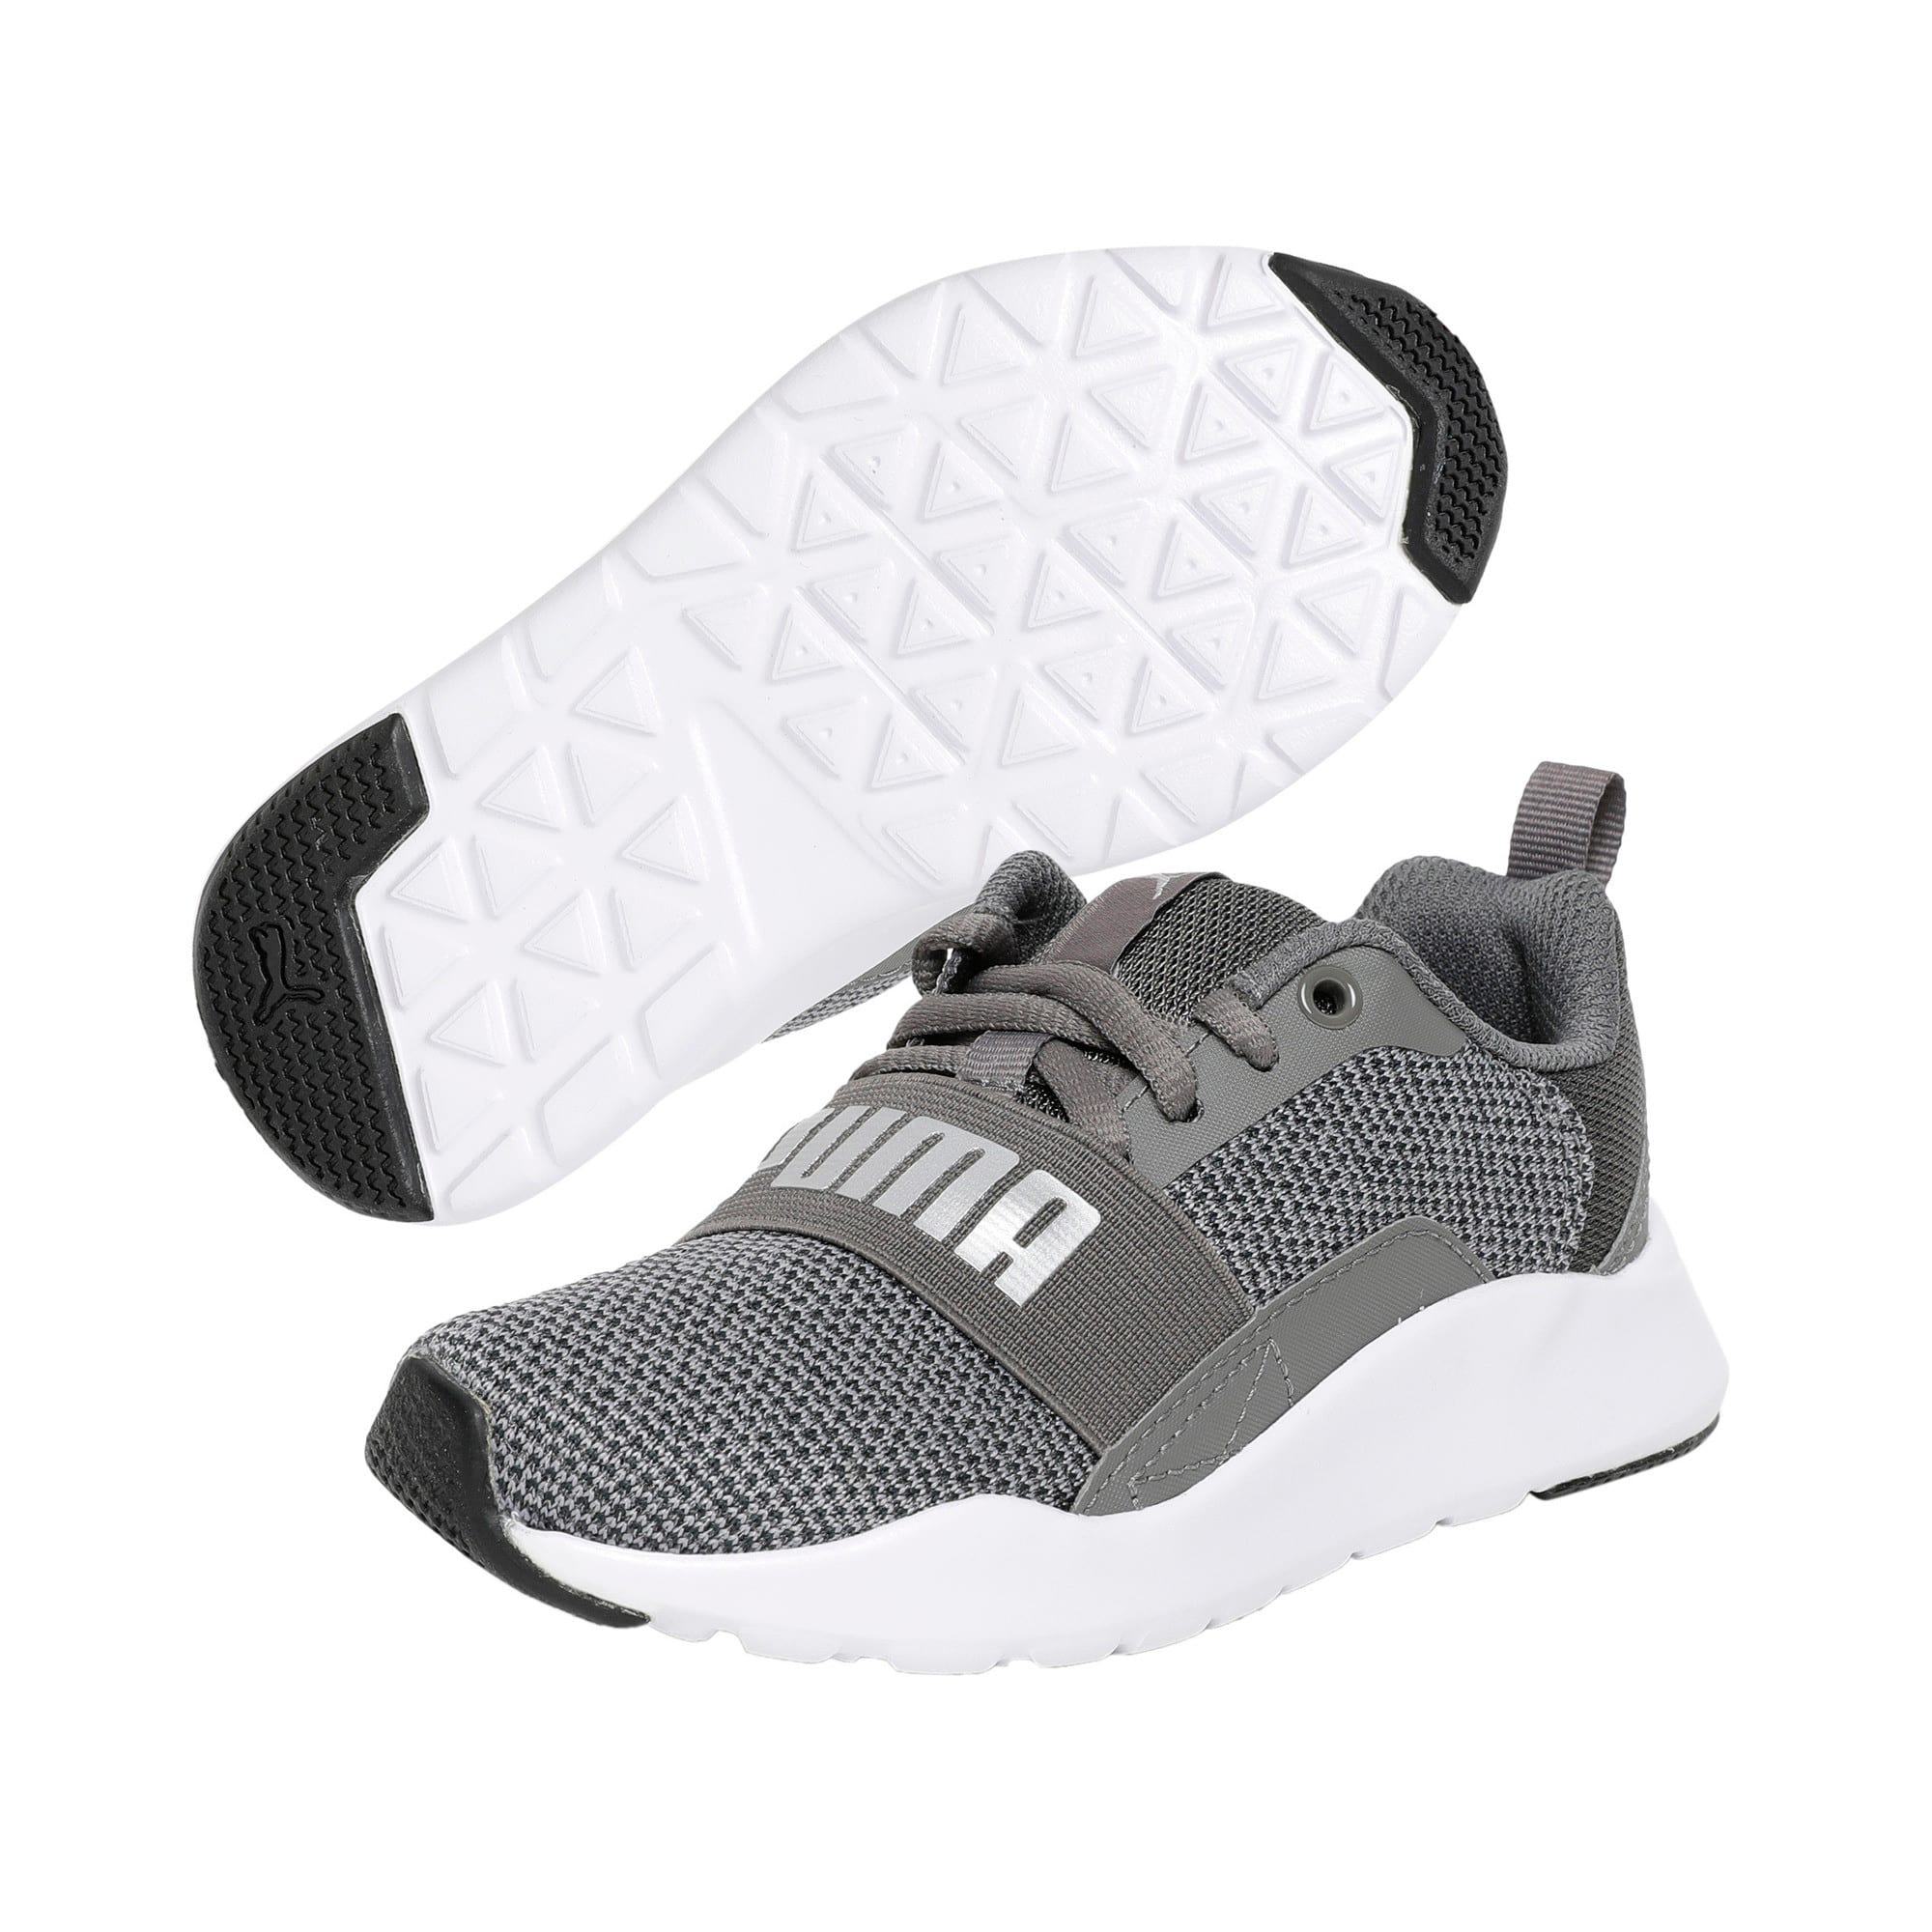 Thumbnail 2 of Wired Knit Kids' Trainers, Charcoal Gray-Puma Silver, medium-IND